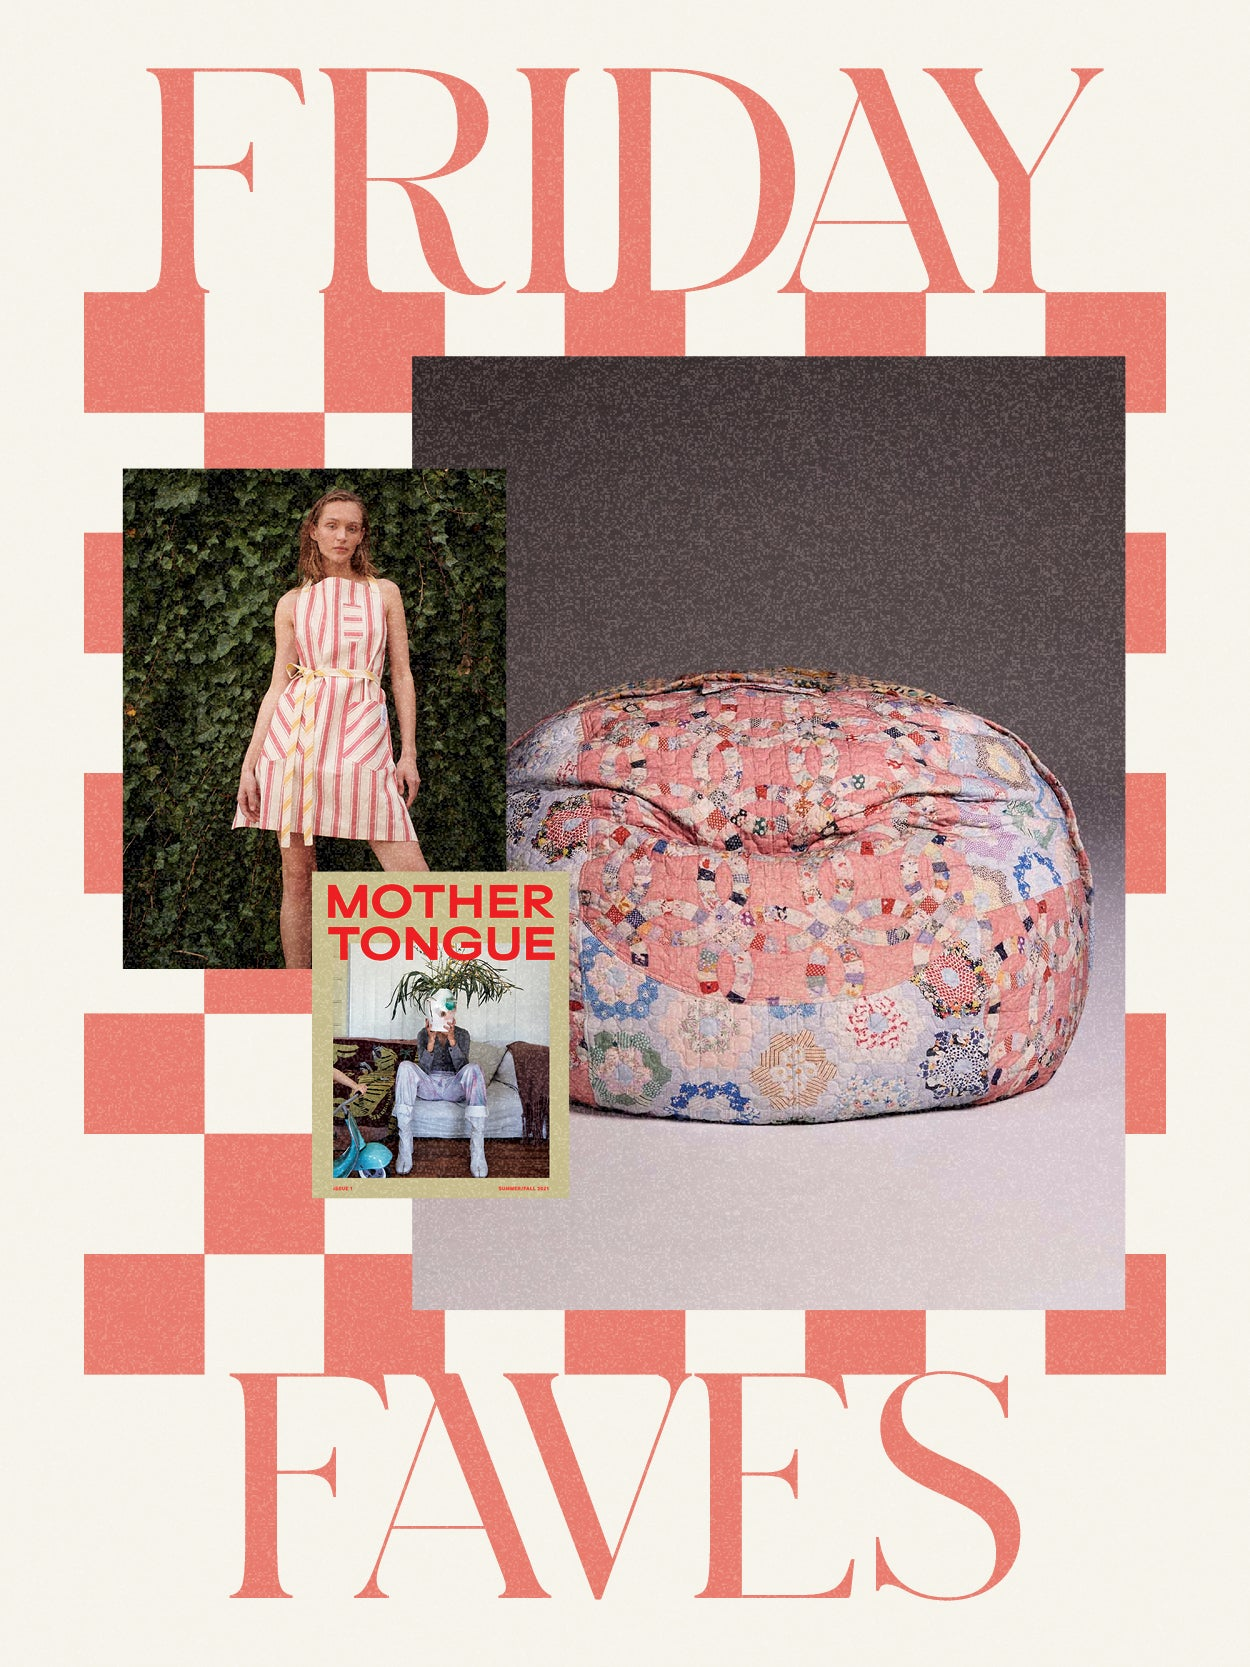 A Buzzy Pendleton Collab, Patchwork Beanbags, and More Design News We're Slacking About